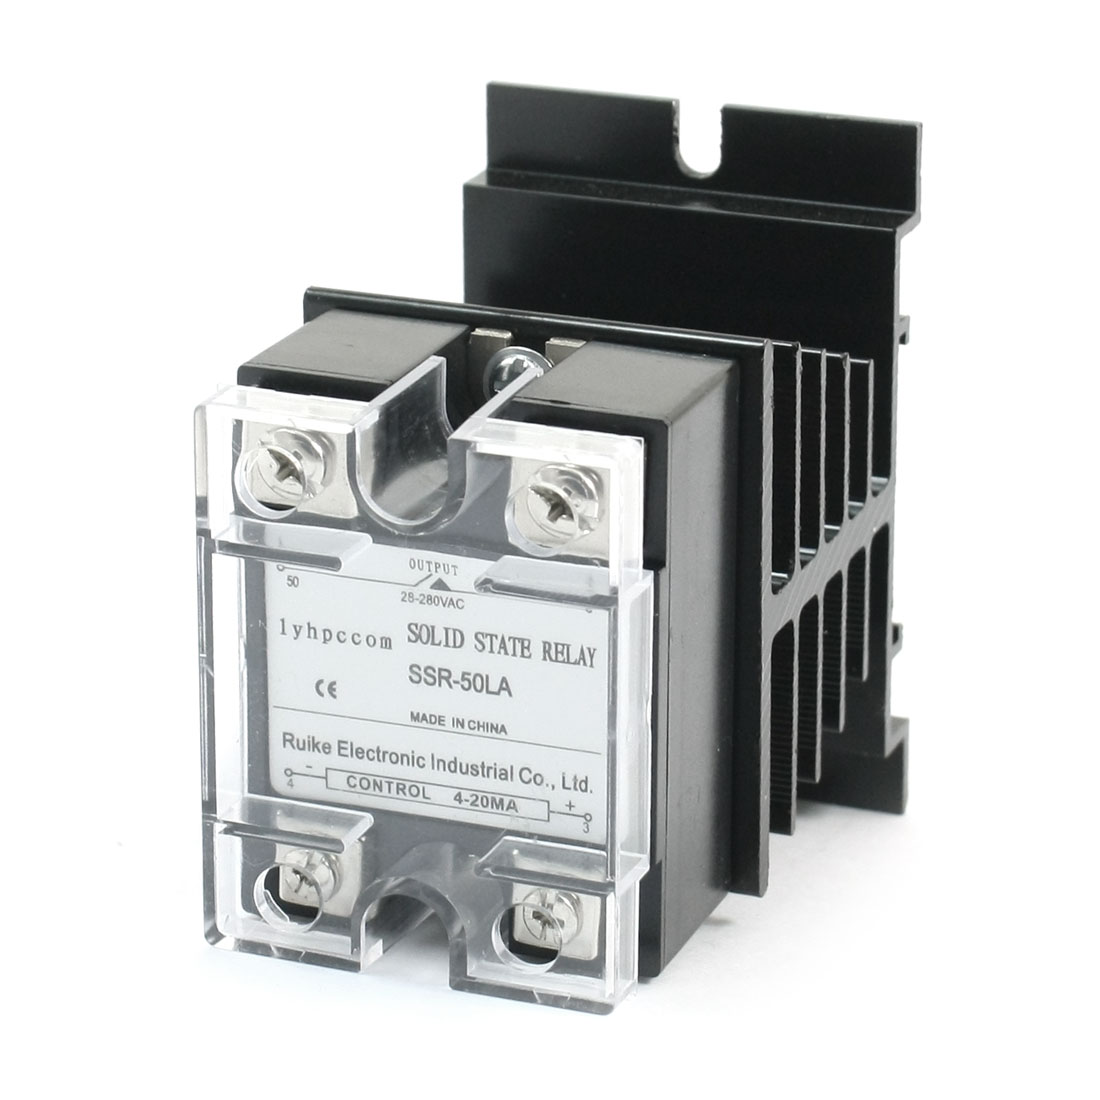 SSR-50LA 4-20mA to AC 28-280V 50A 4 Screw Terminal Single Phase Aluminum Heatsink SSR Solid State Relay w Cover